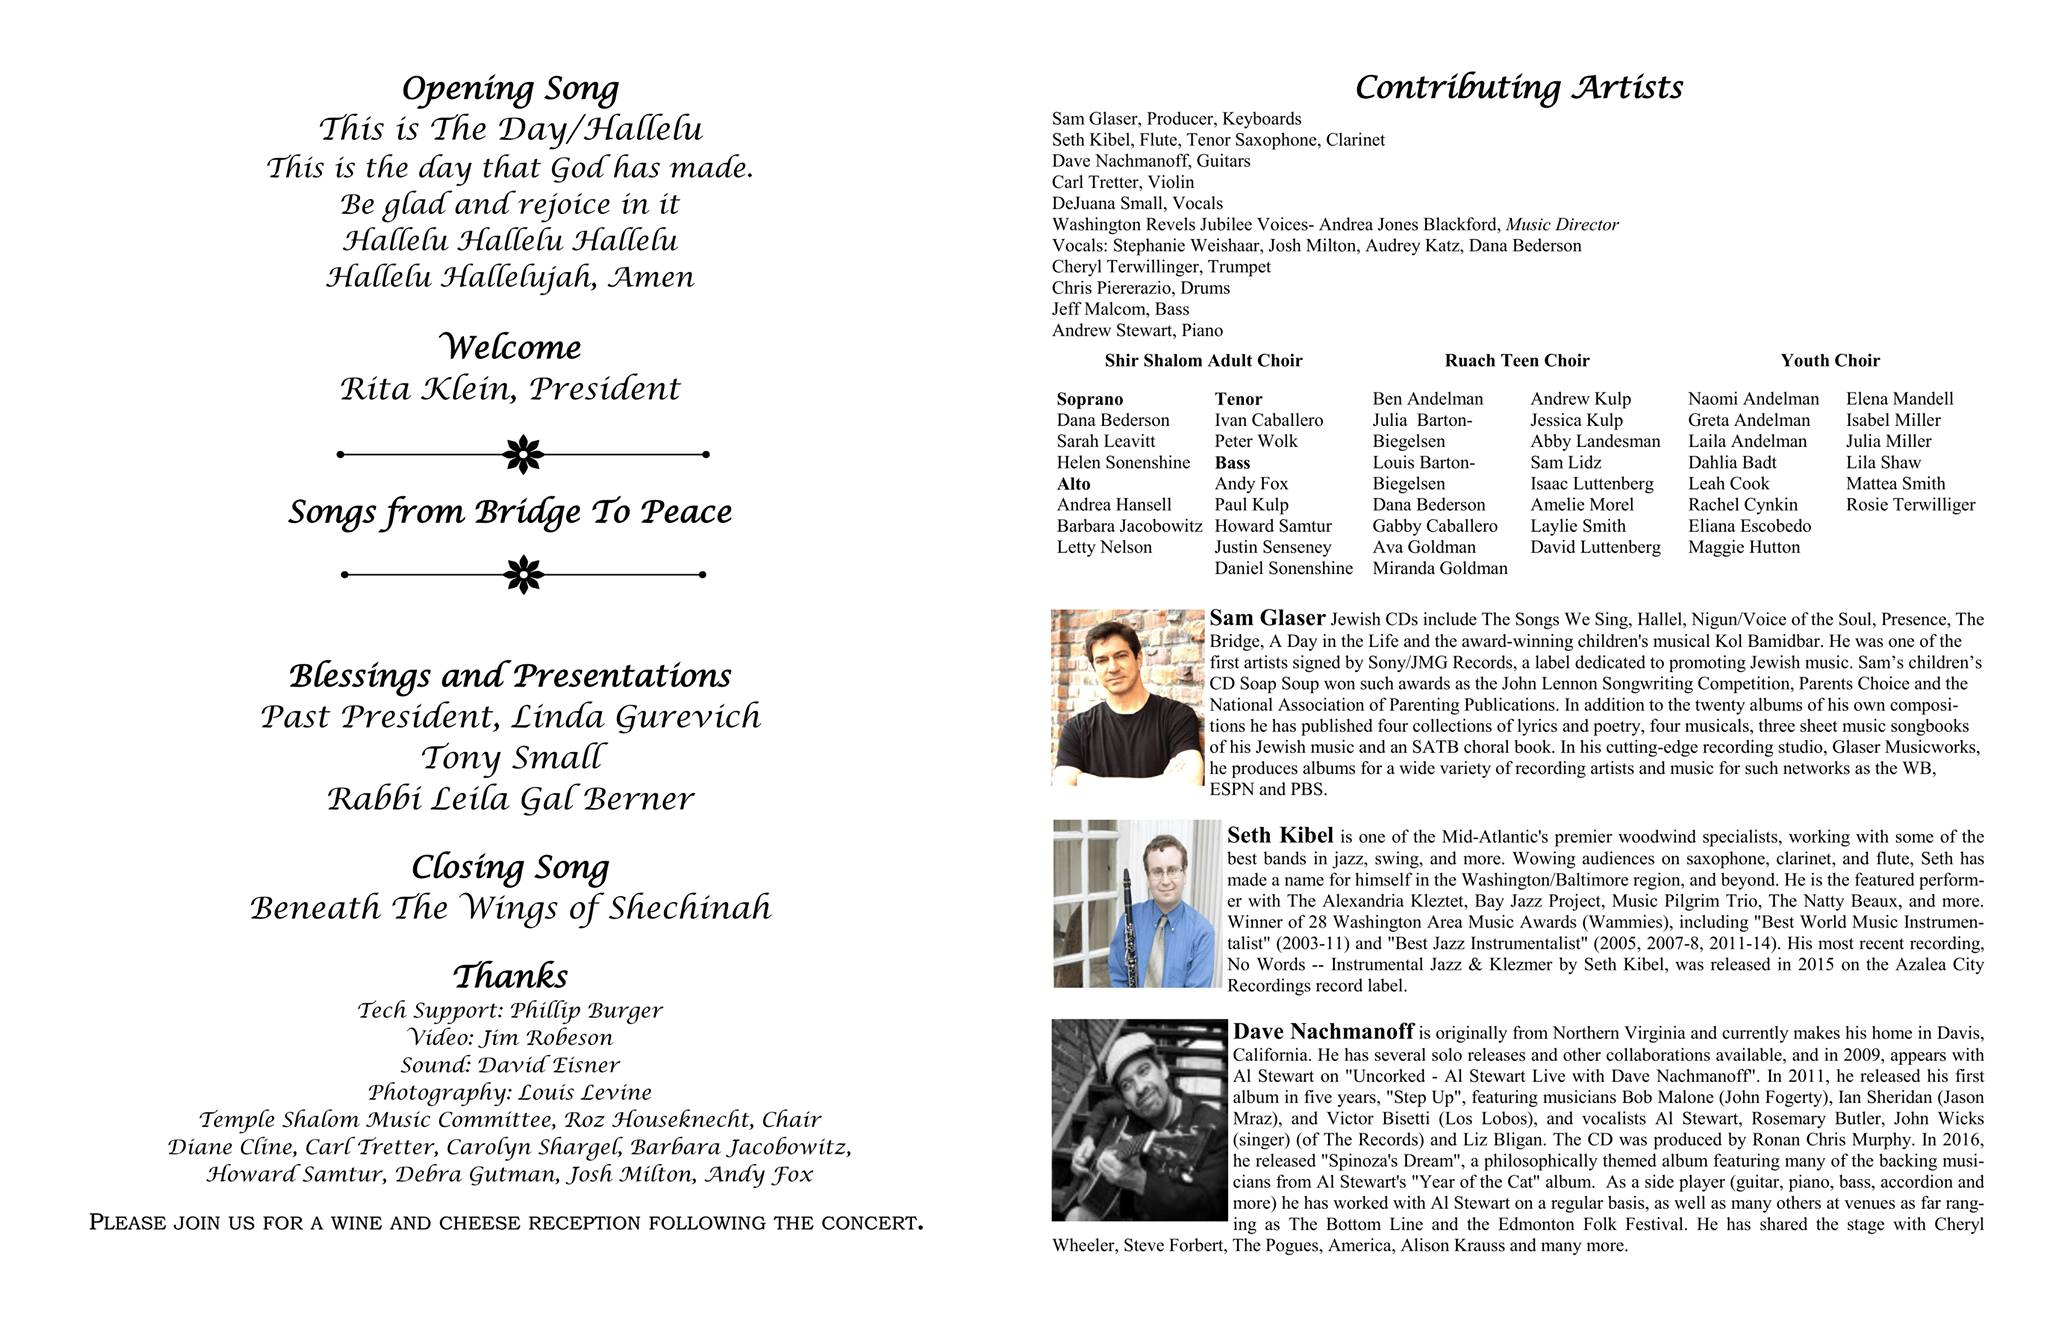 Bridge To Peace CD Release Party Program - inside information